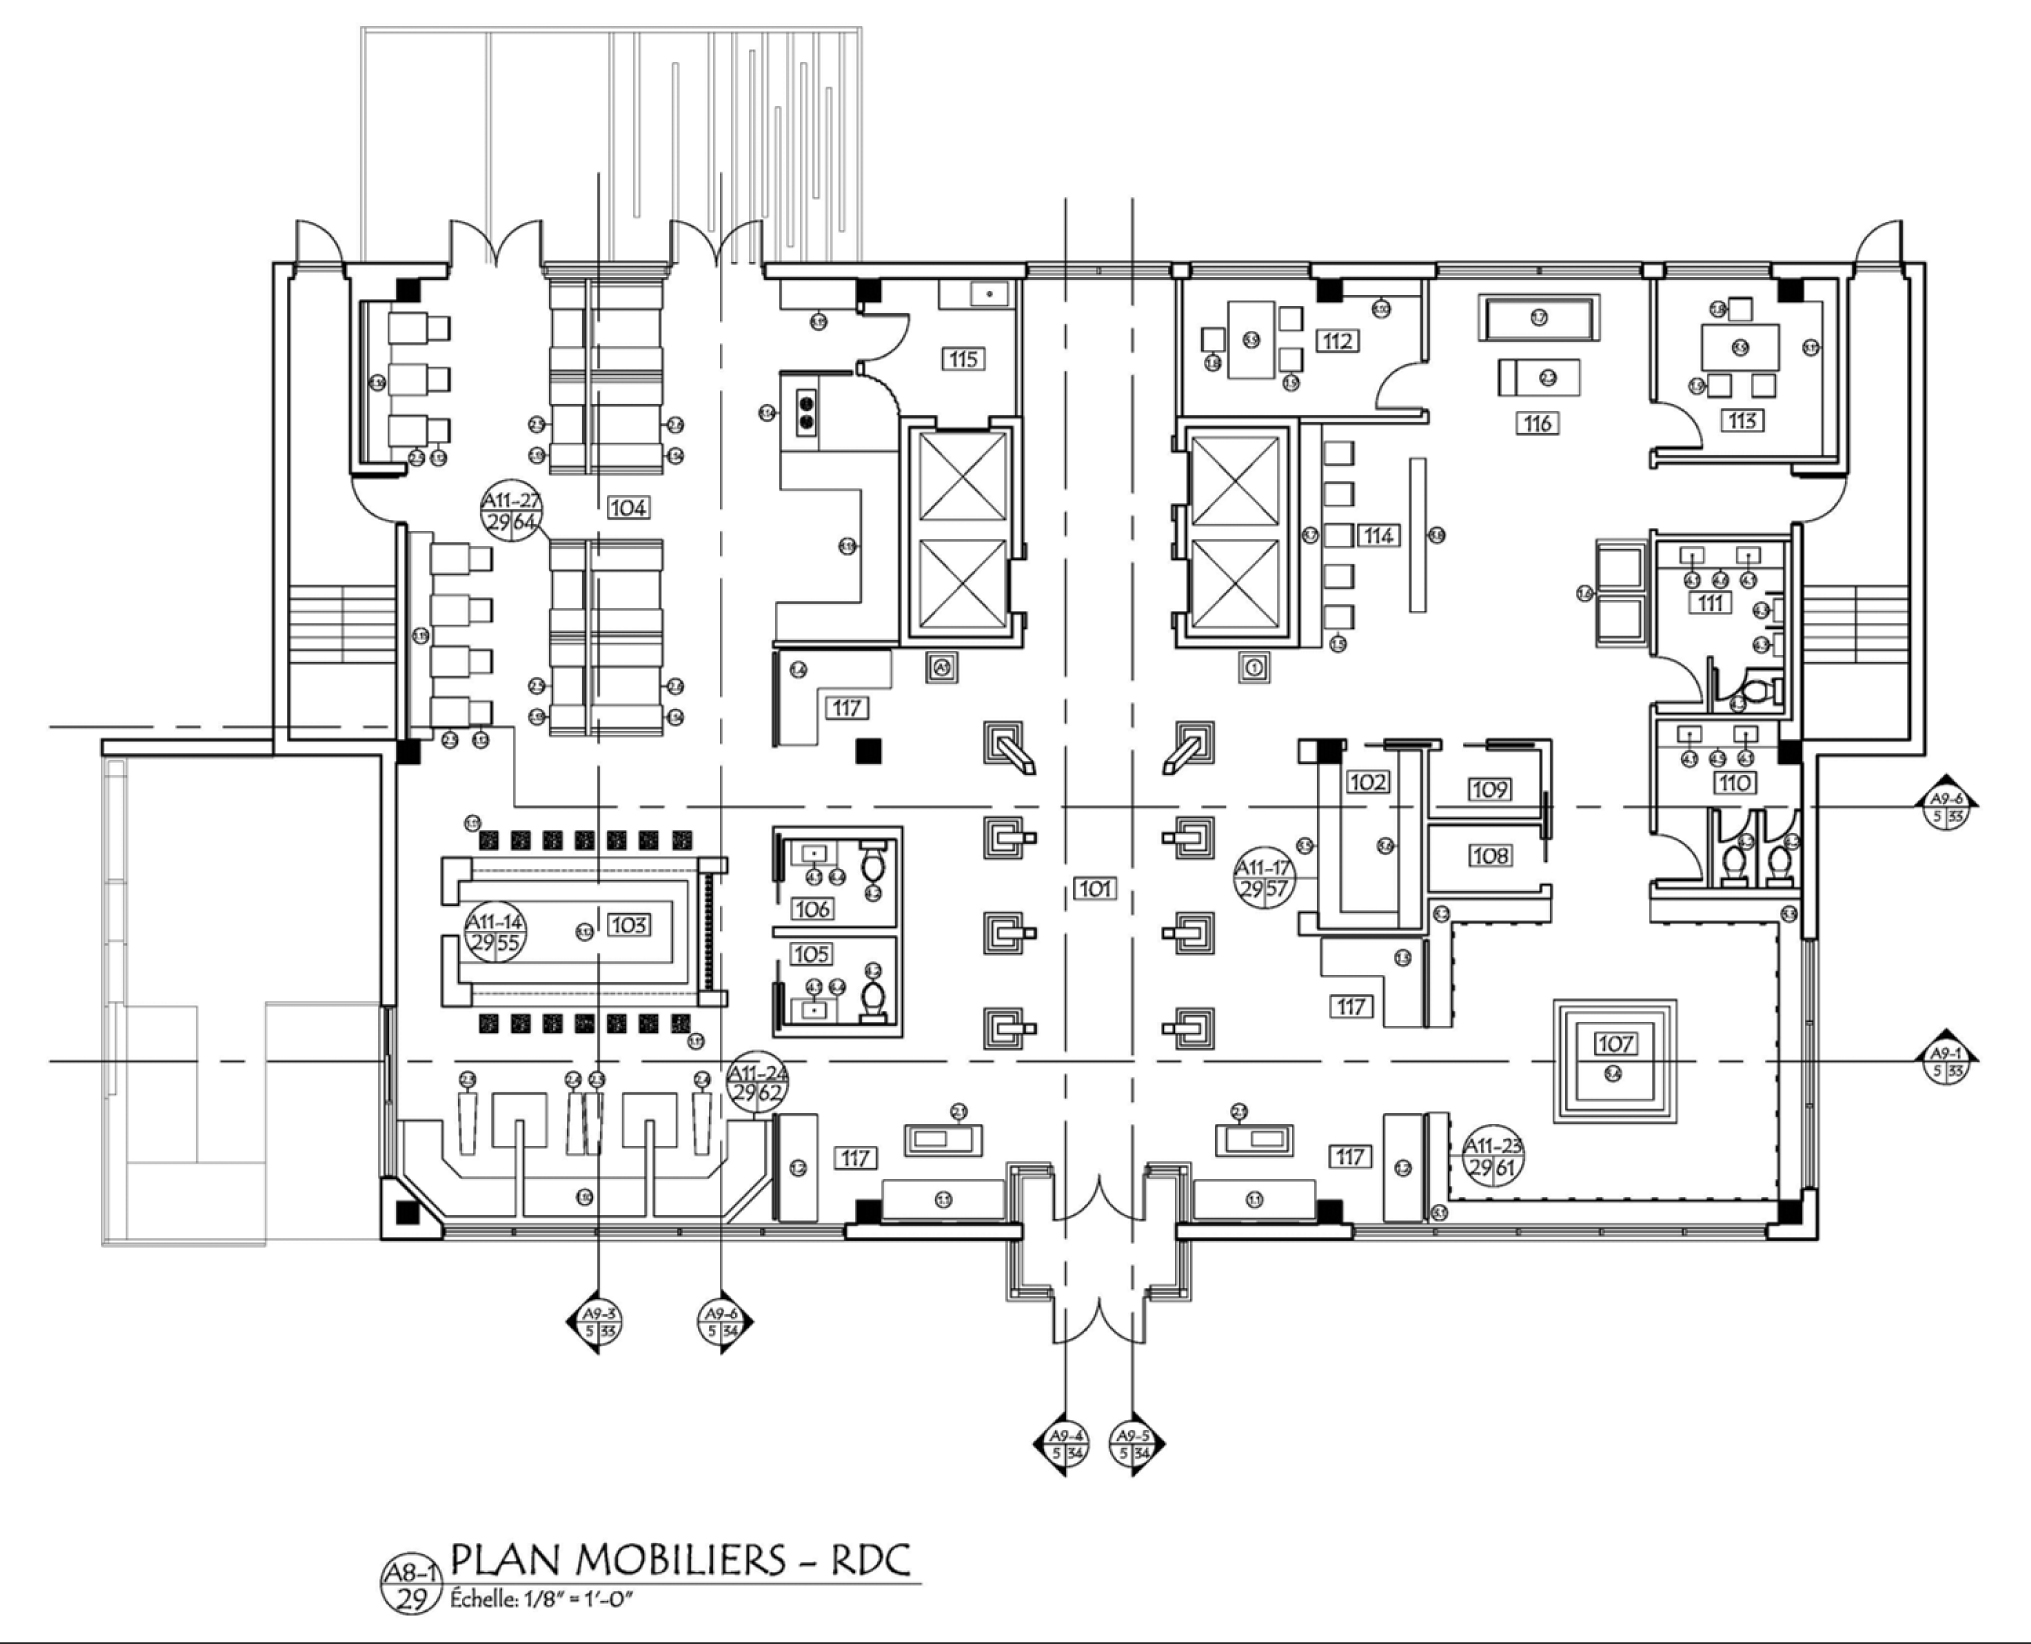 Plan amenagement RDC